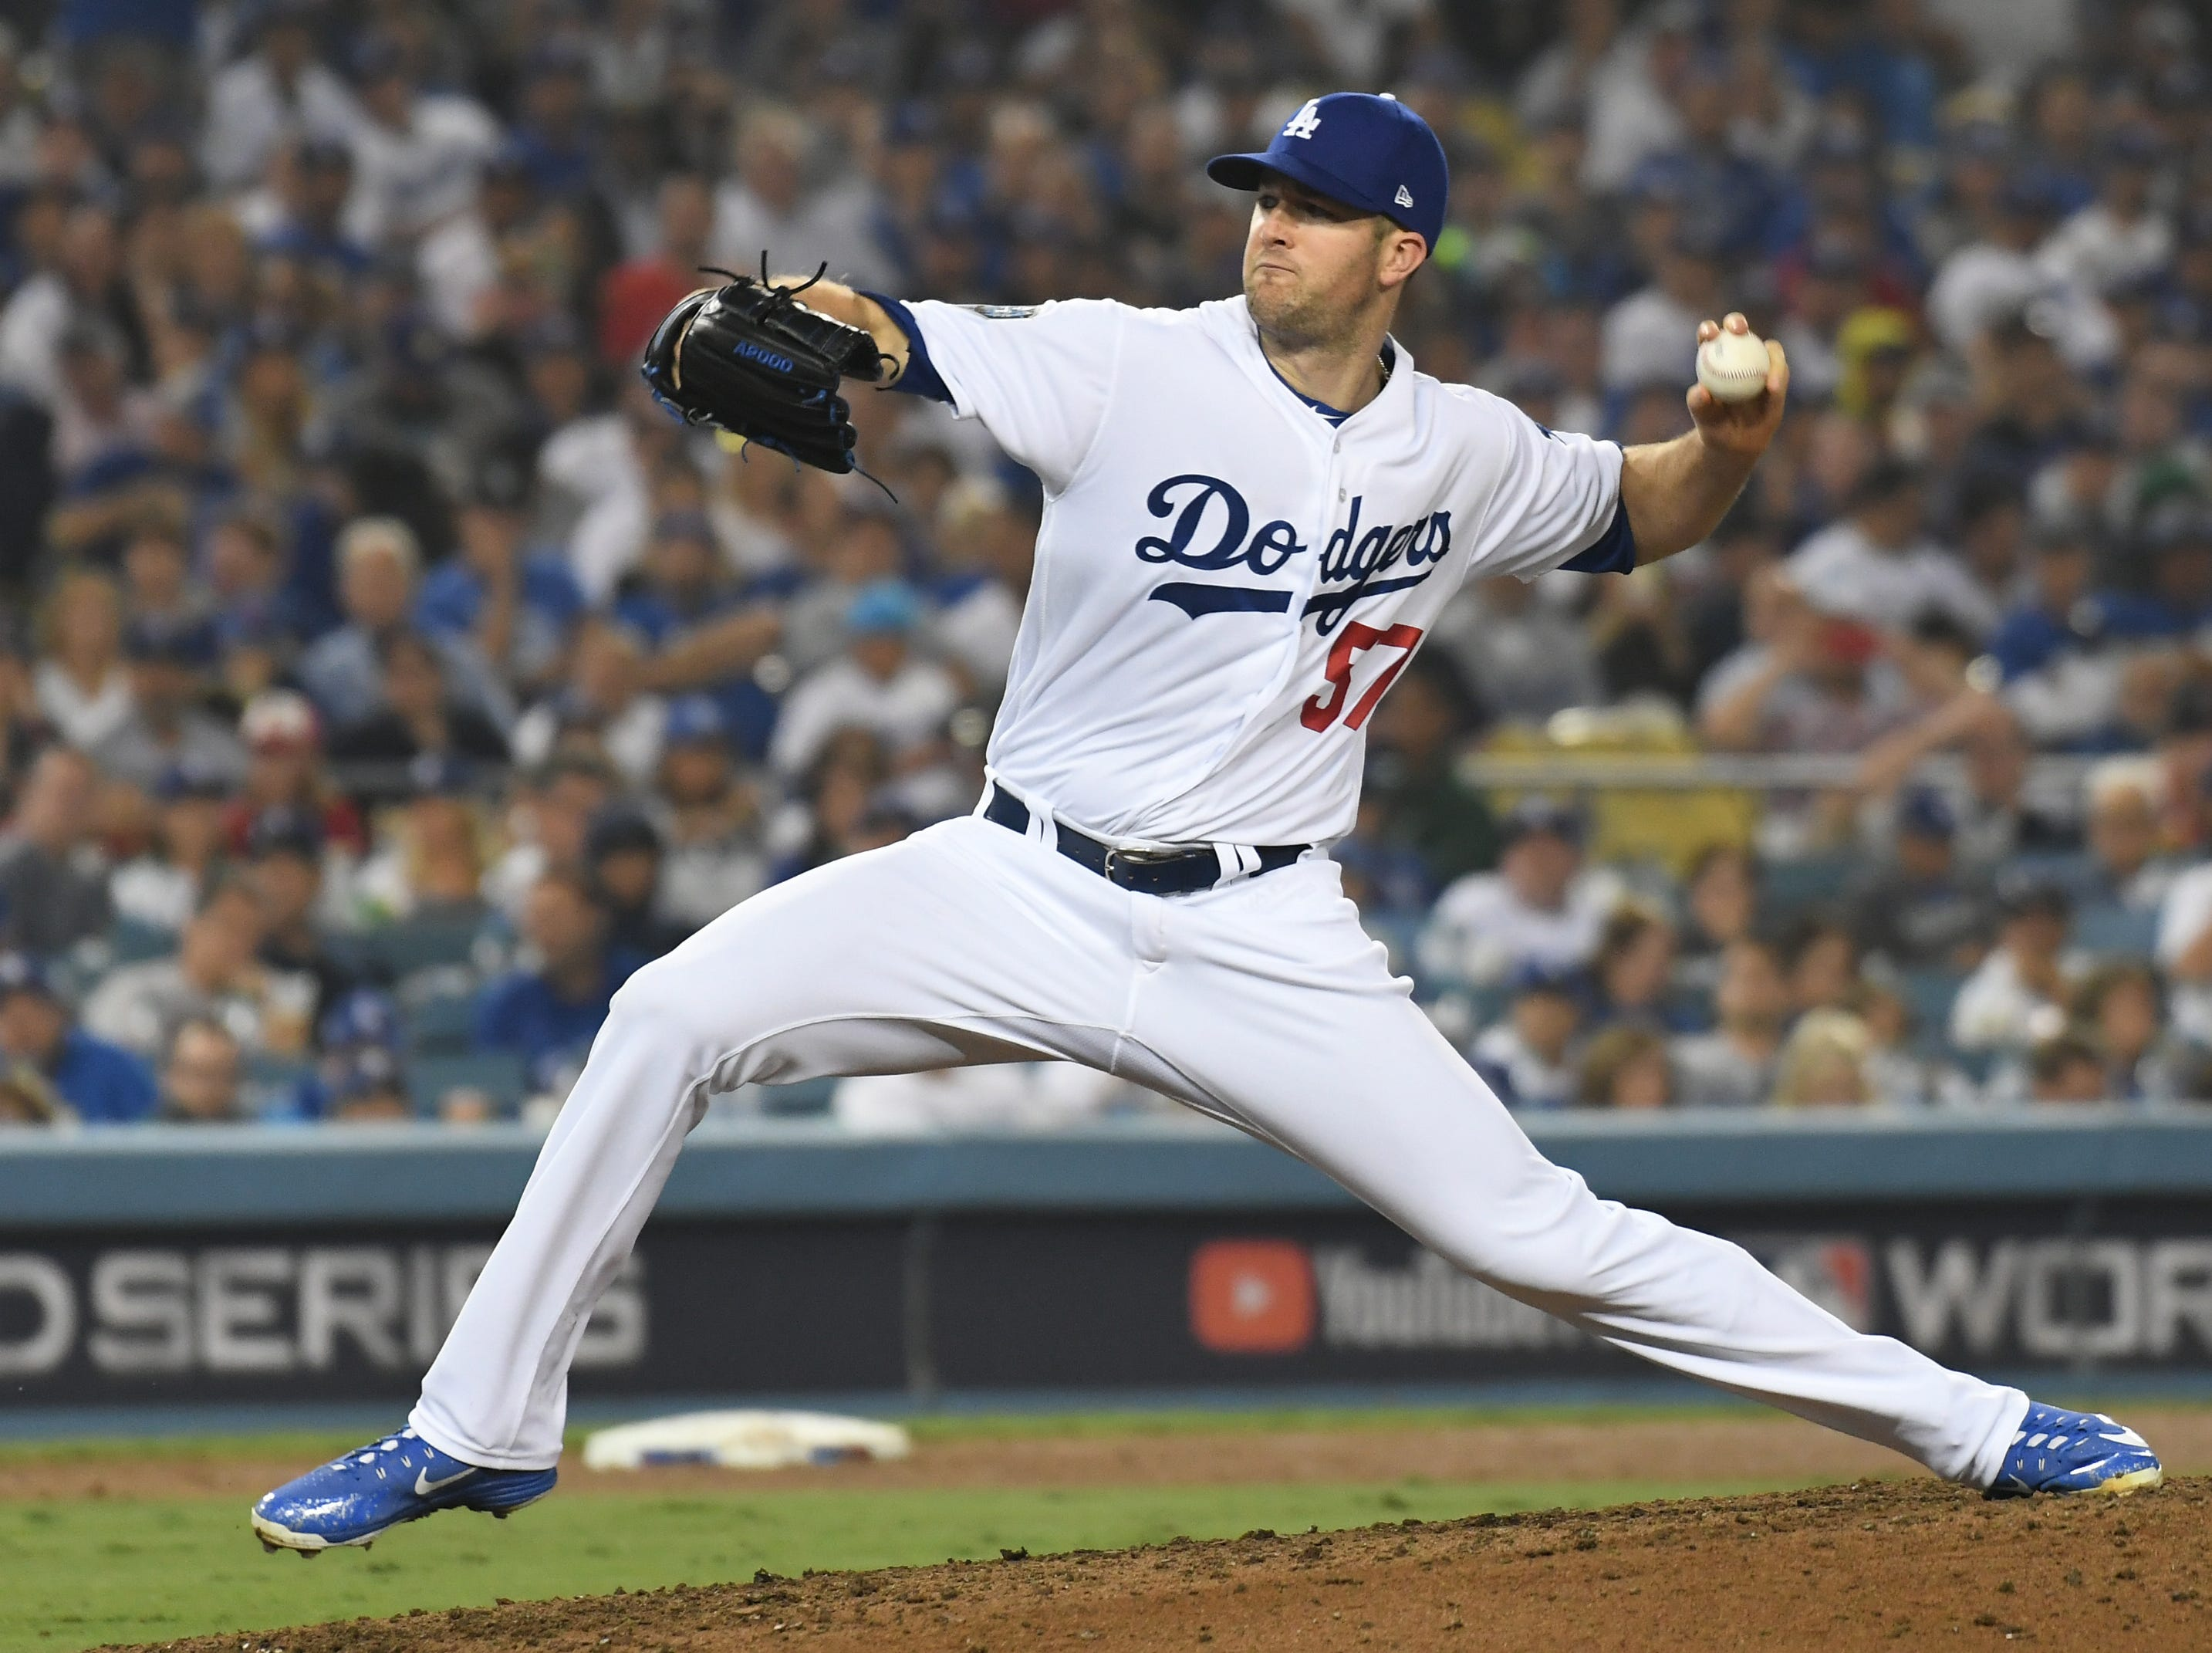 Dec. 21: The Dodgers traded LHP Alex Wood, OF Matt Kemp and OF Yasiel Puig to the Reds for RHP Homer Bailey and two prospects.